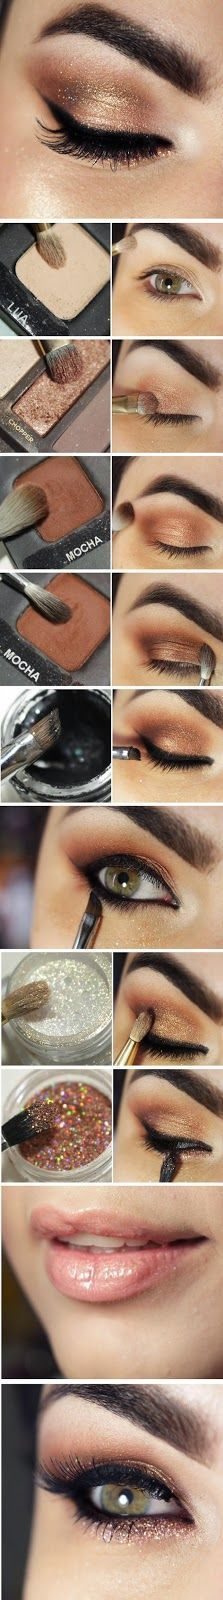 agradable maquillaje noche mejores equipos